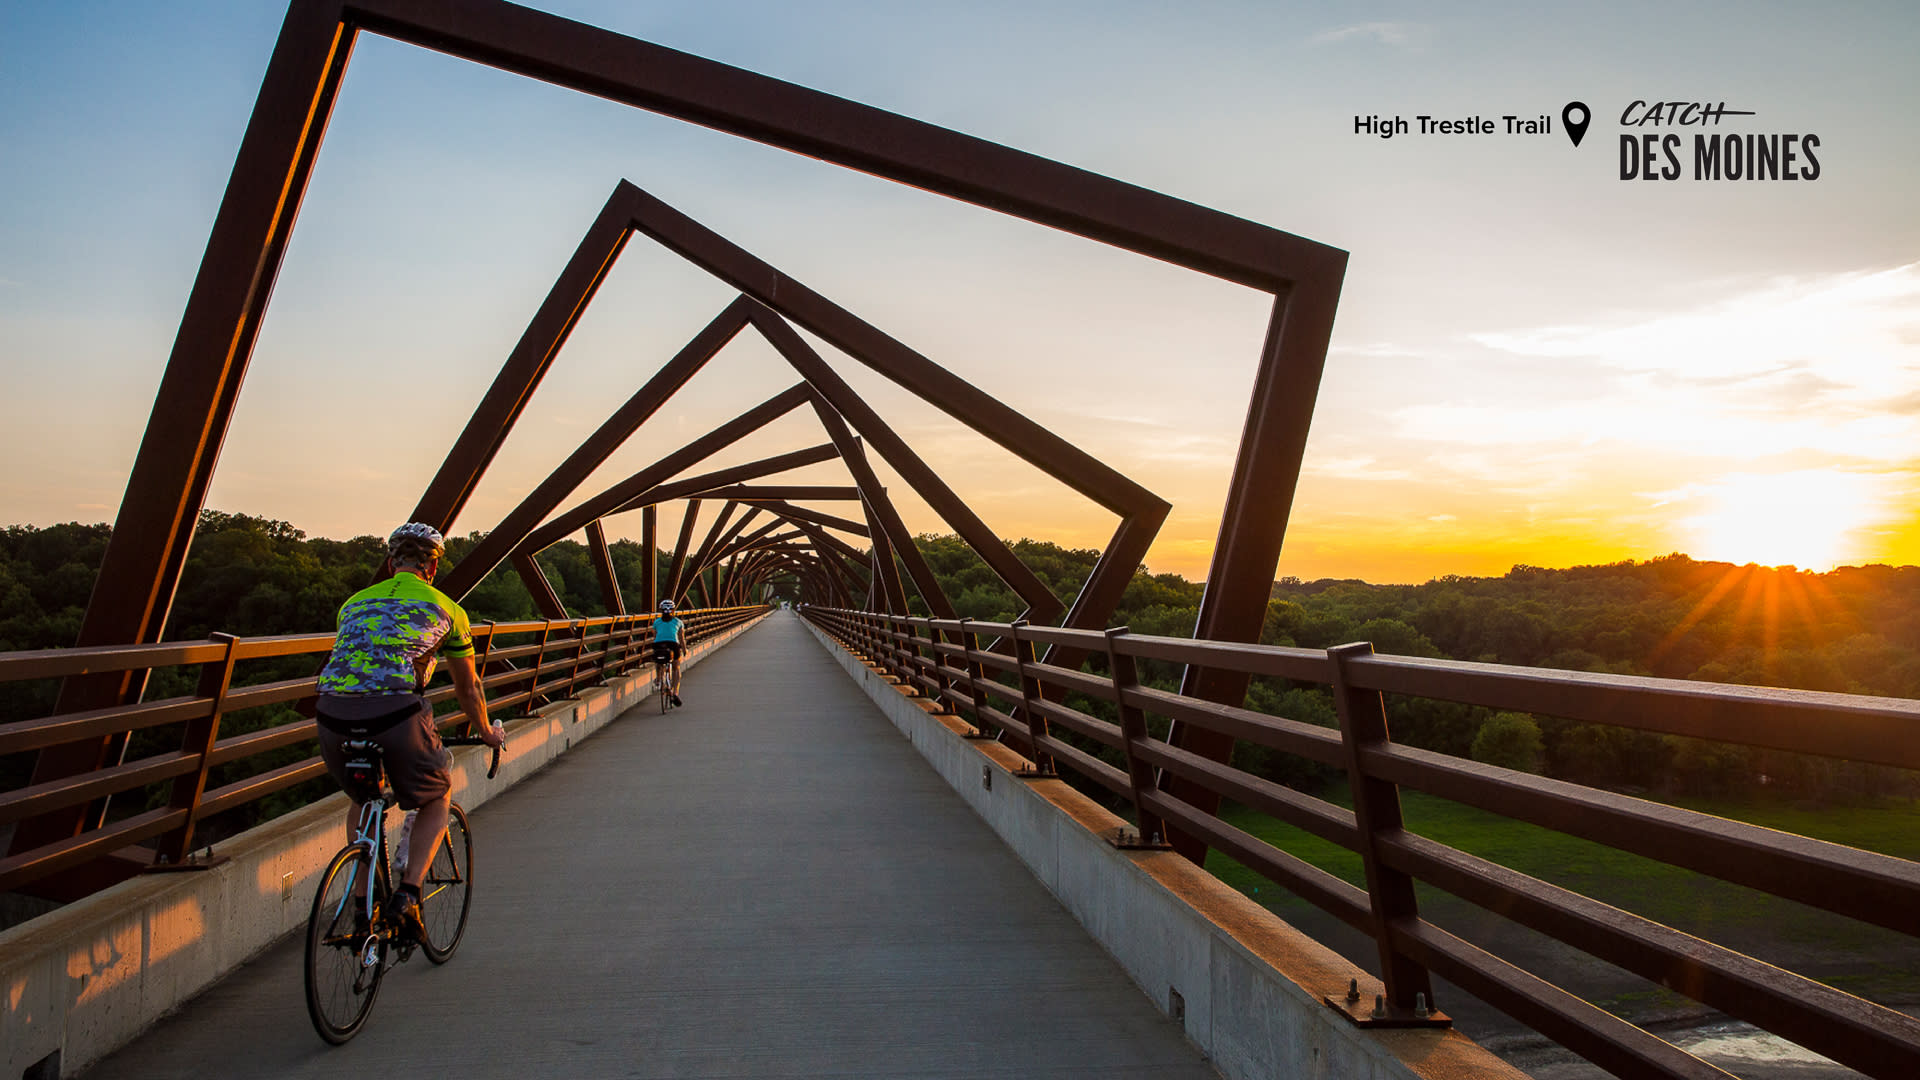 Bikers on the High Trestle Trail Zoom Background